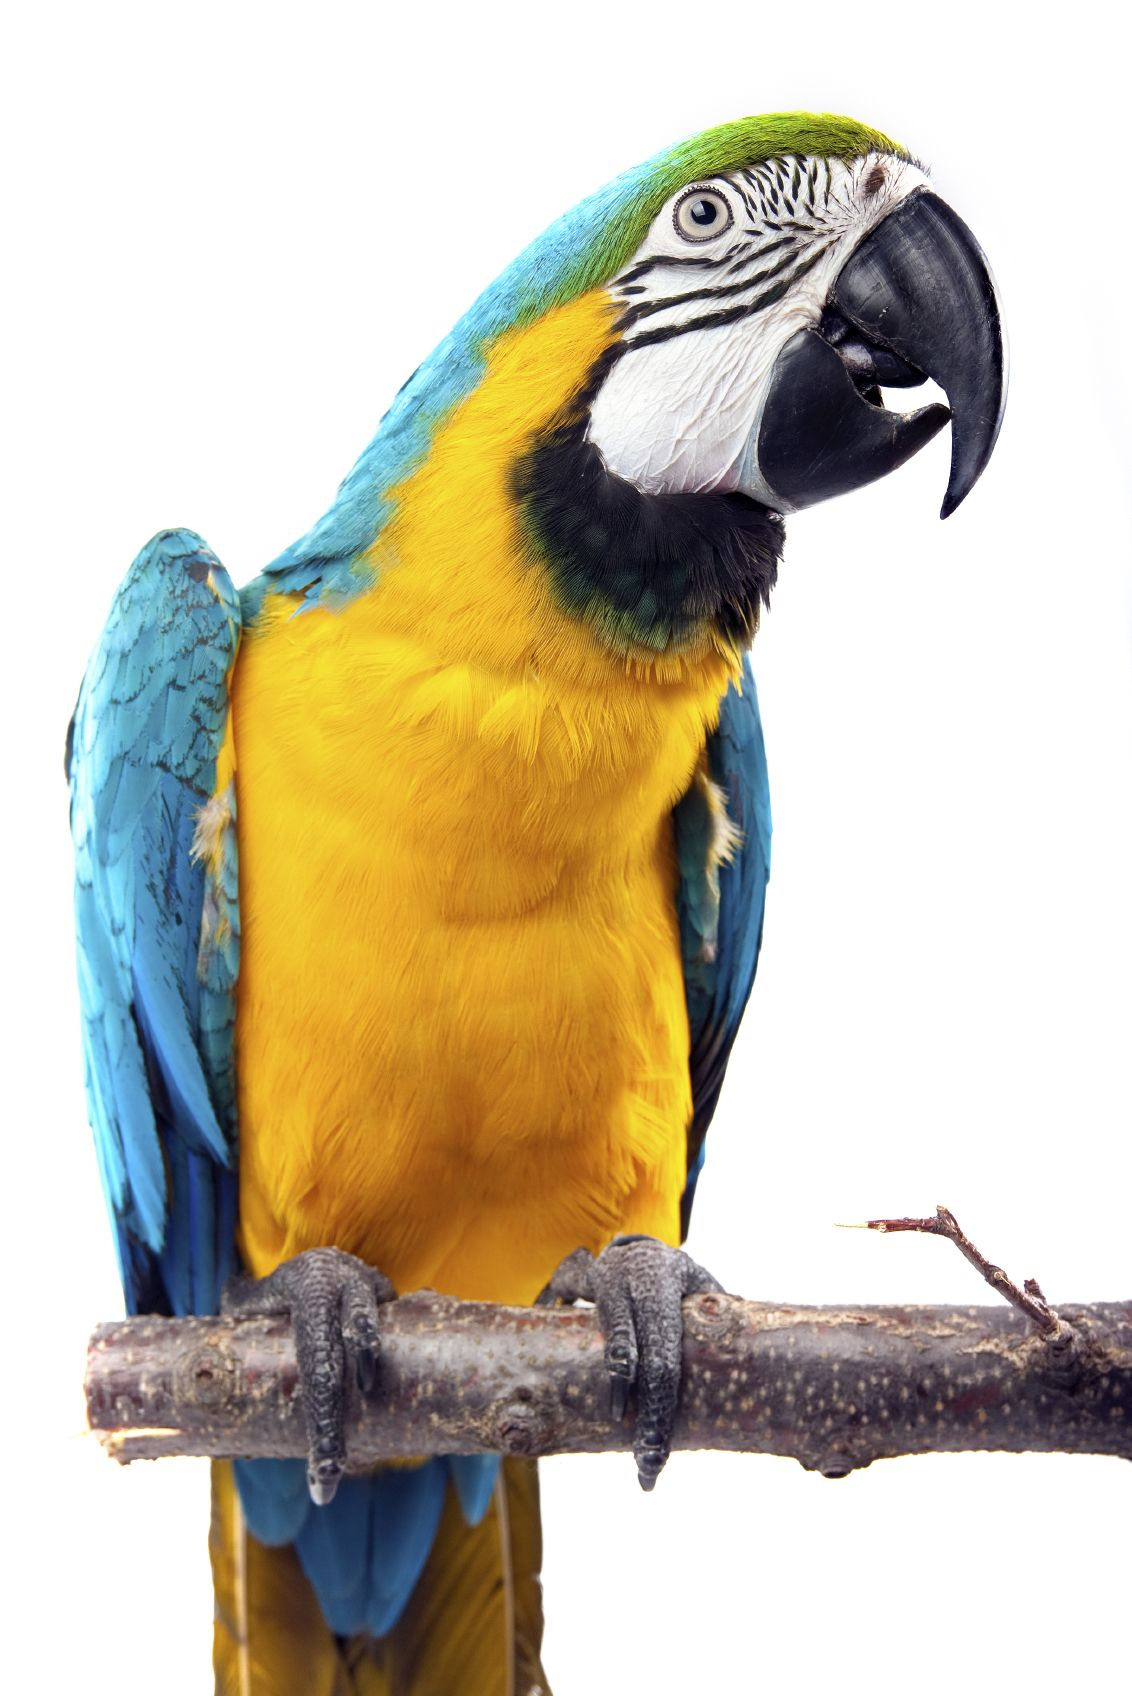 Blue & Gold Macaw 1,500 Our Birds